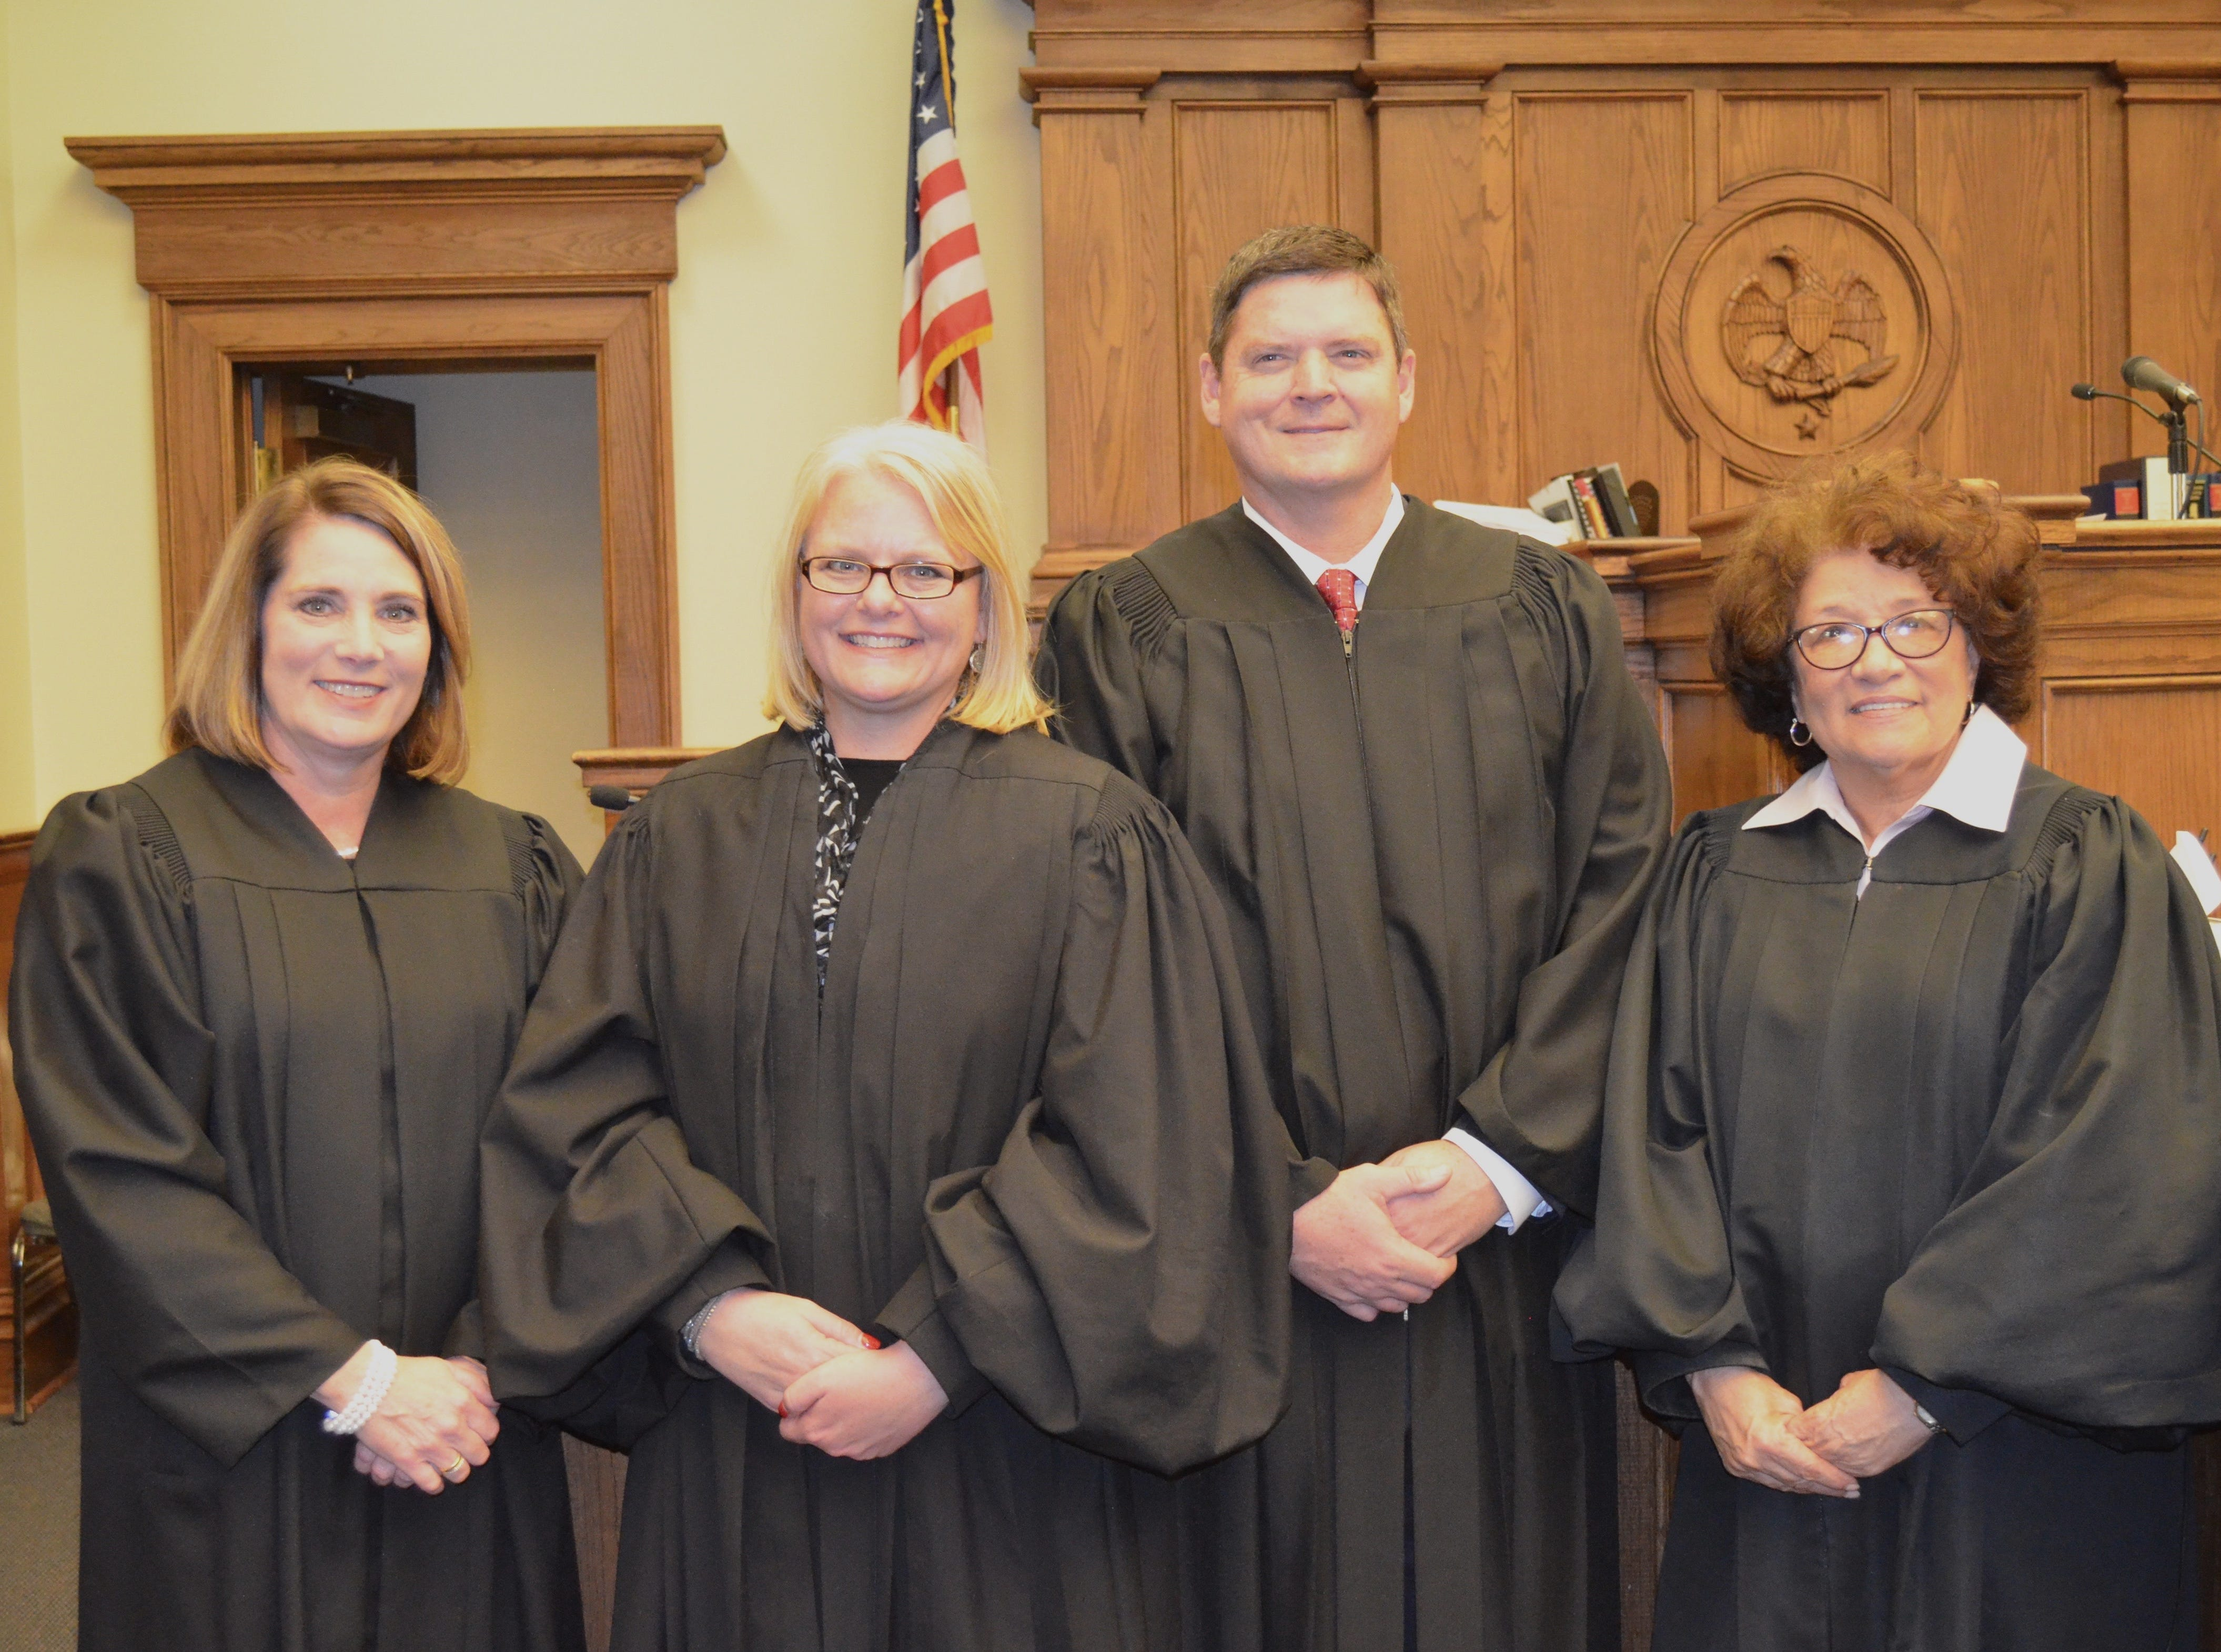 From left, Chancellors Sheila Havard Smallwood, Rhea Sheldon, Chad Smith and Deborah Gambrell take the oath of office on Friday, Dec. 28, 2018, at Forrest County Courthouse.